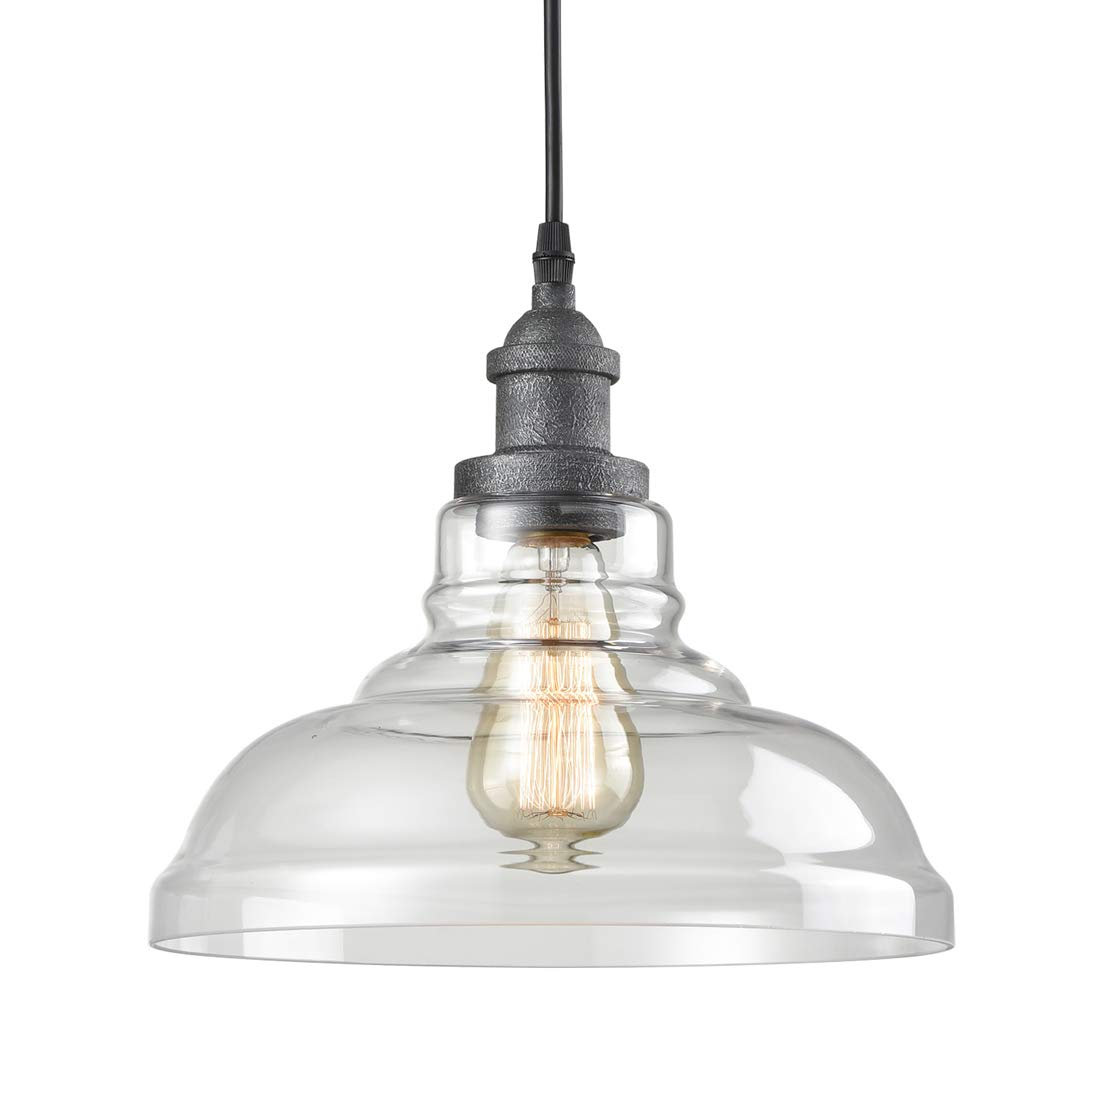 AXILAND Barn Rustic Pendant Lighting Clear Glass Hanging Light for Kitchen Island